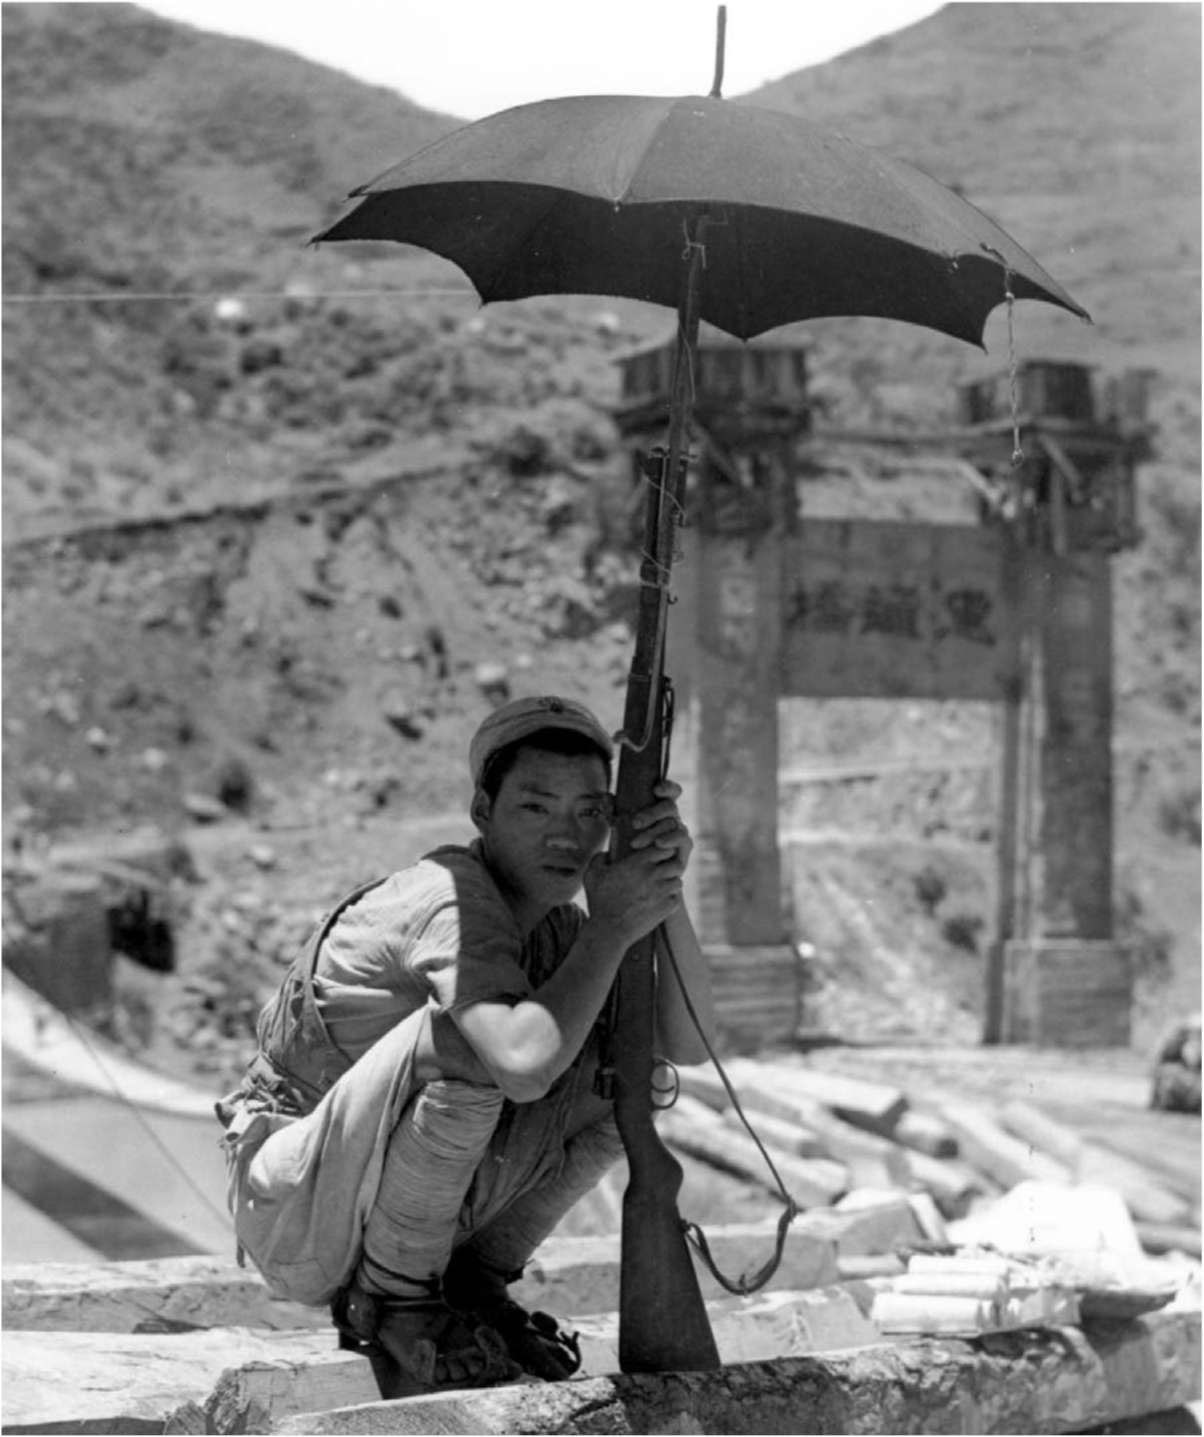 Chinese soldier on guard duty near a bridge over the Salween River, Burma, 1944